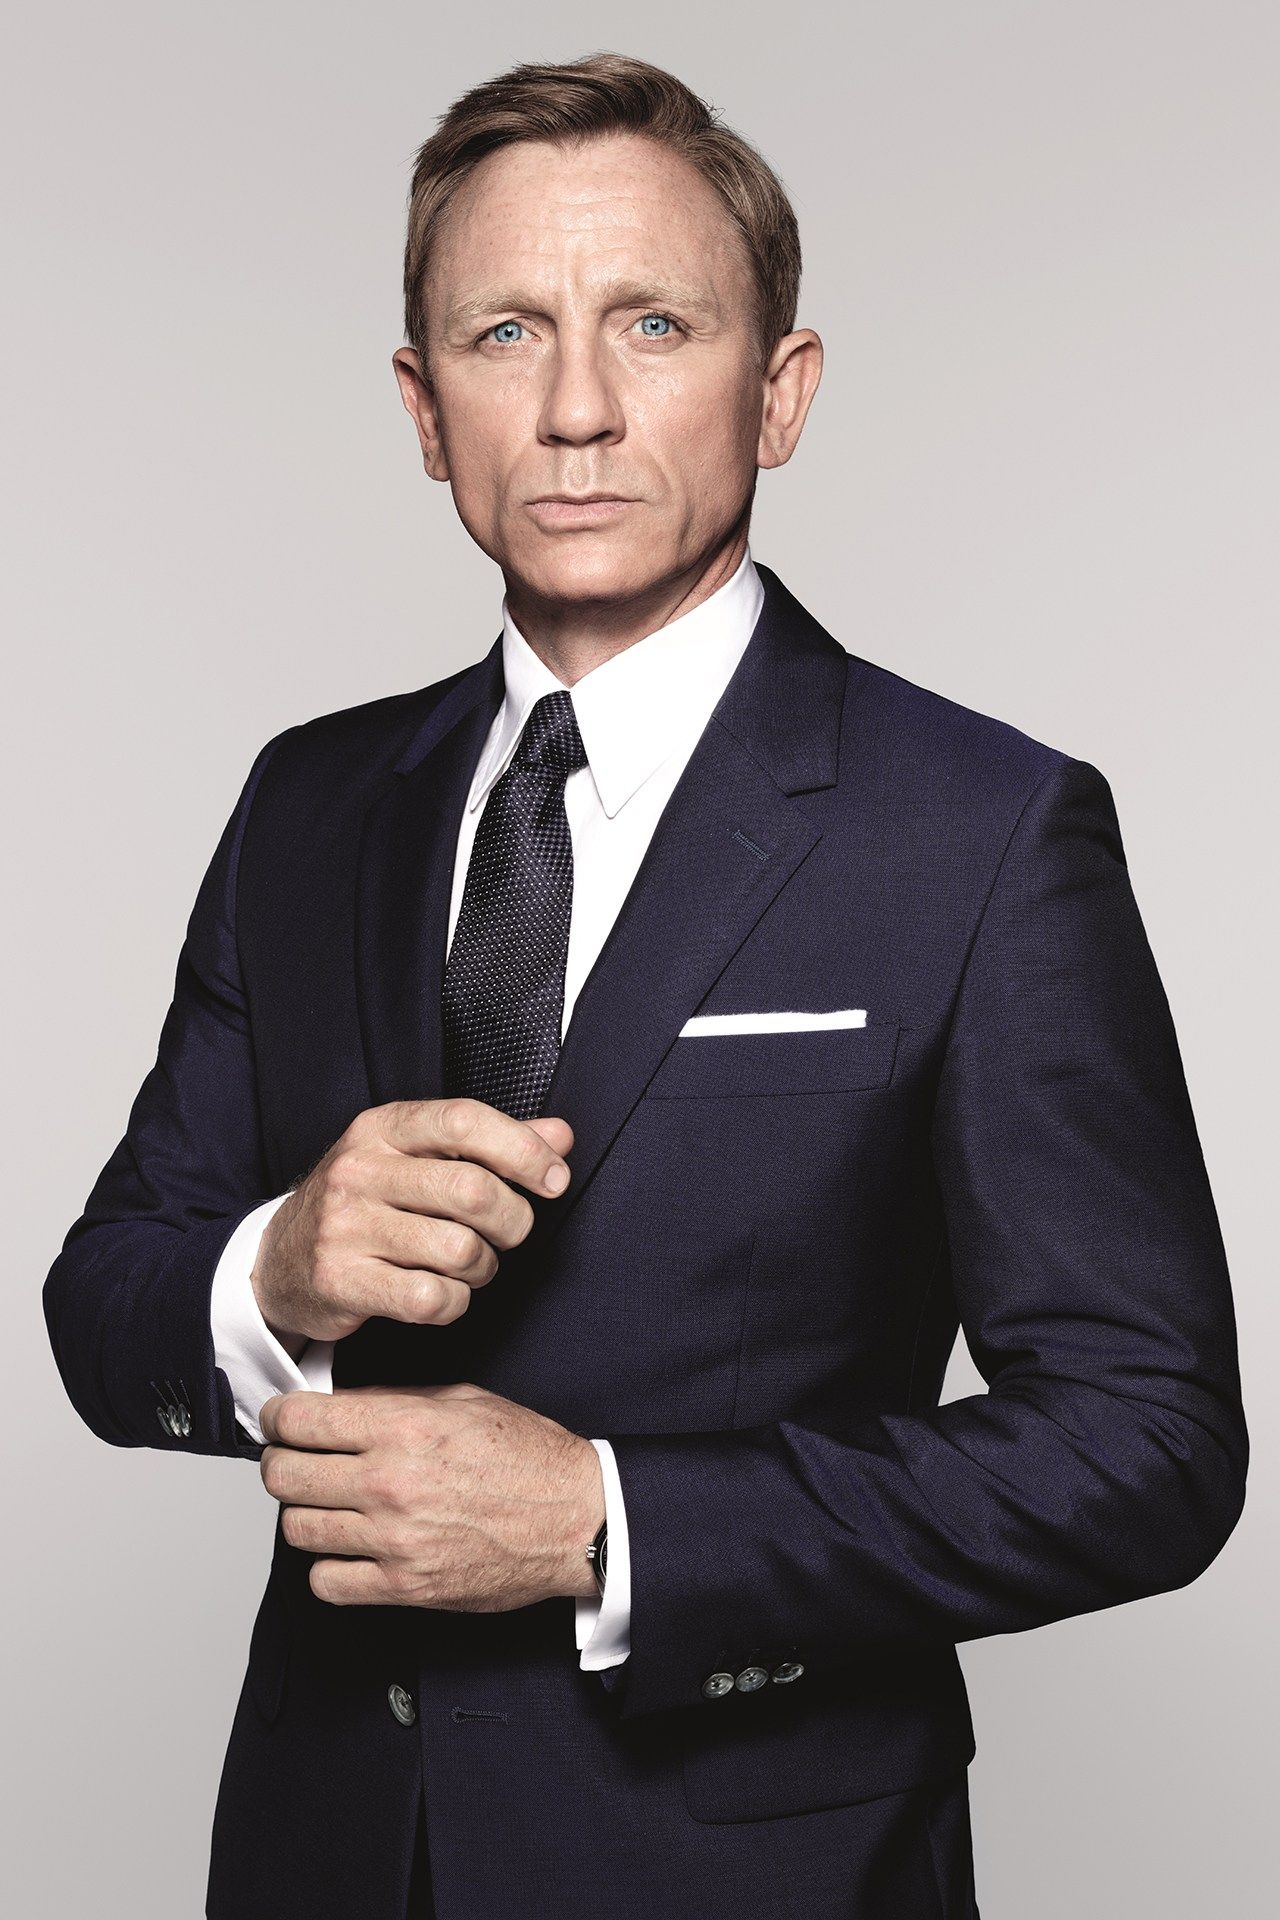 b681916d4ed0 World exclusive images of Daniel Craig as James Bond from Spectre - GQ.co.uk